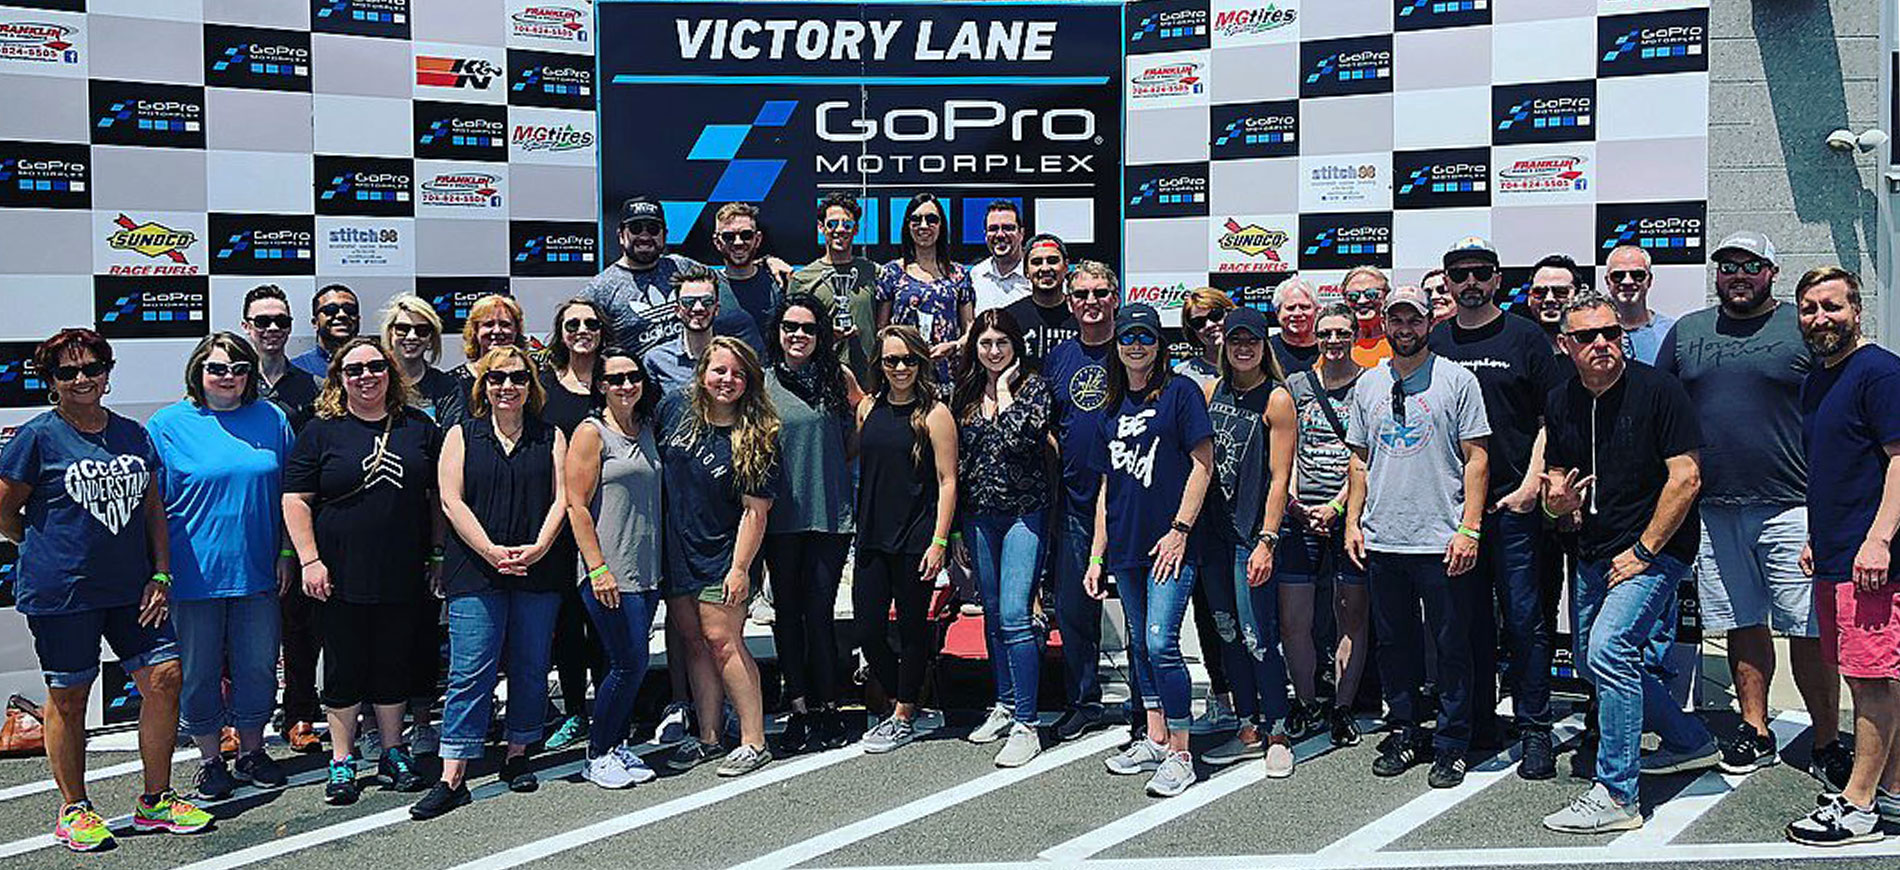 Group Racing And Corporate Events At The Gopro Motorplex